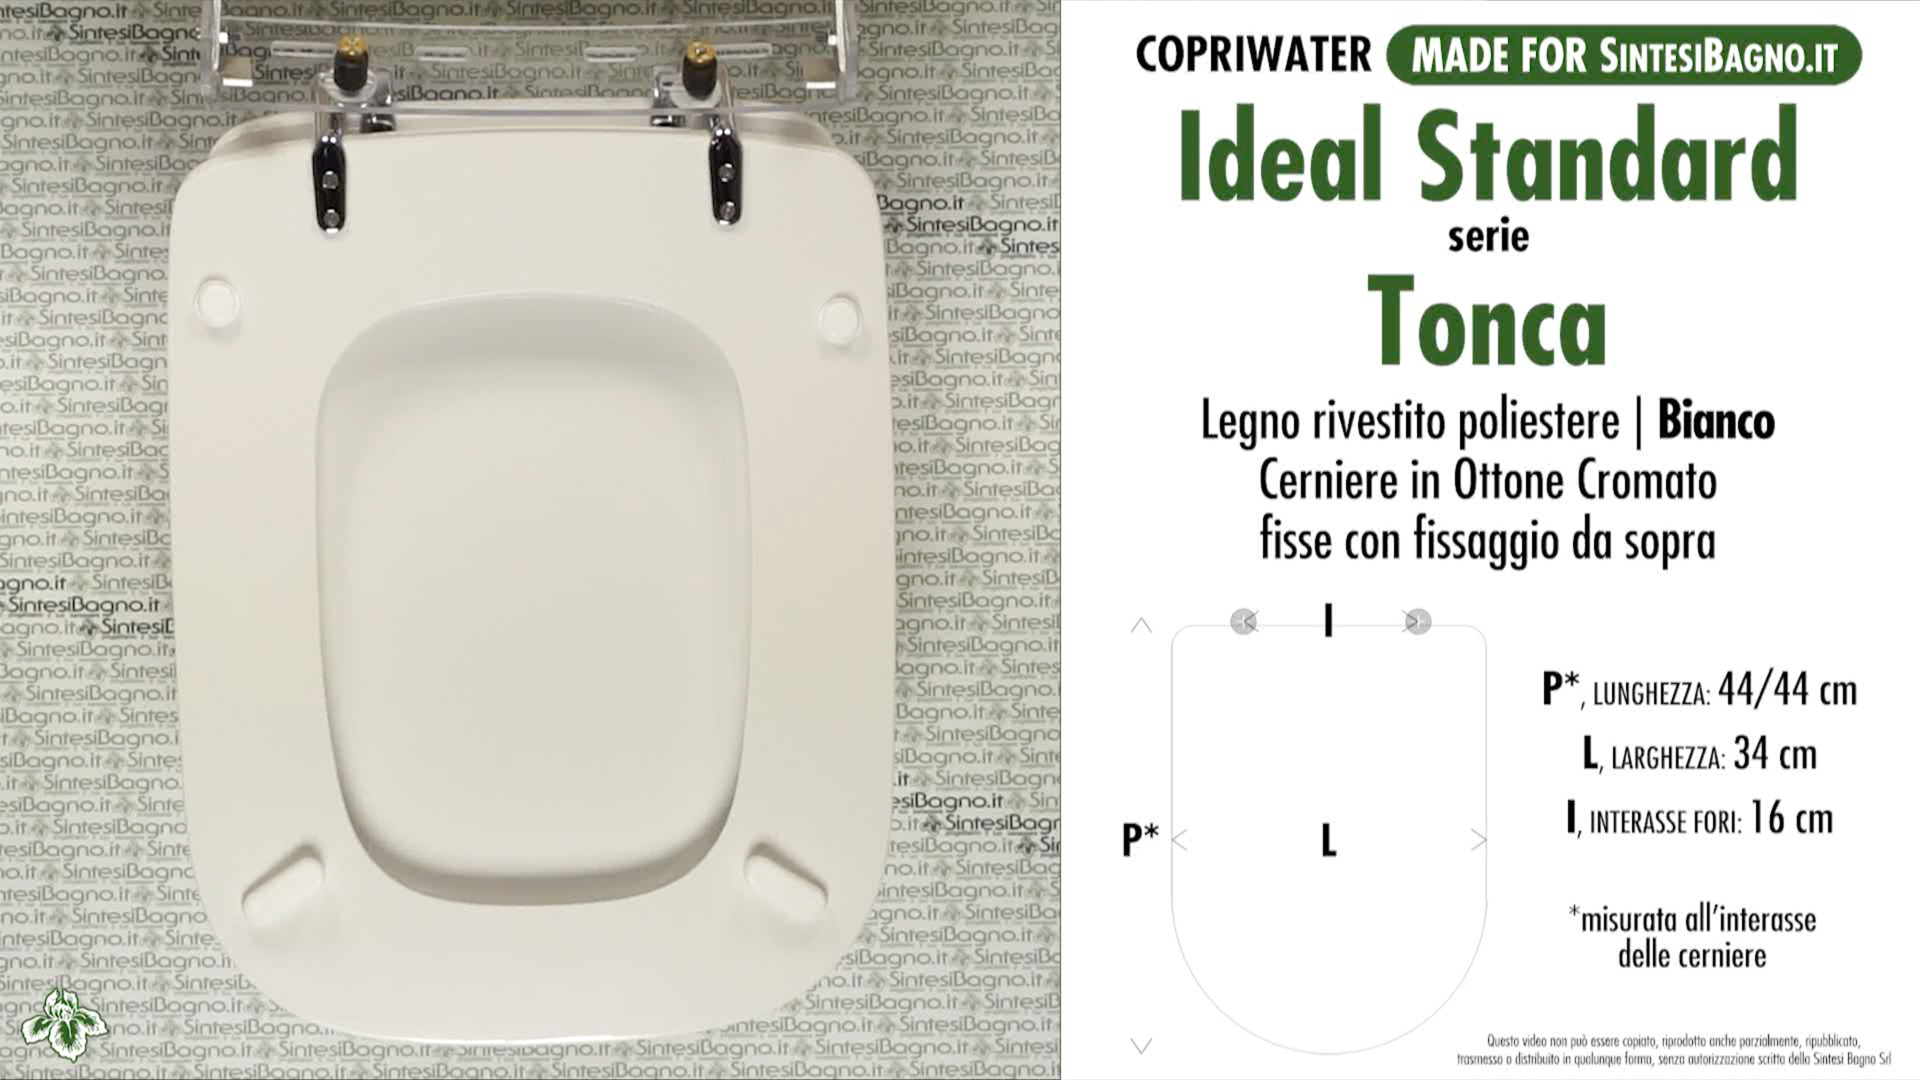 Wc sitz sintesibagno made f r ideal standard wc tonca for Lunette wc ideal standard